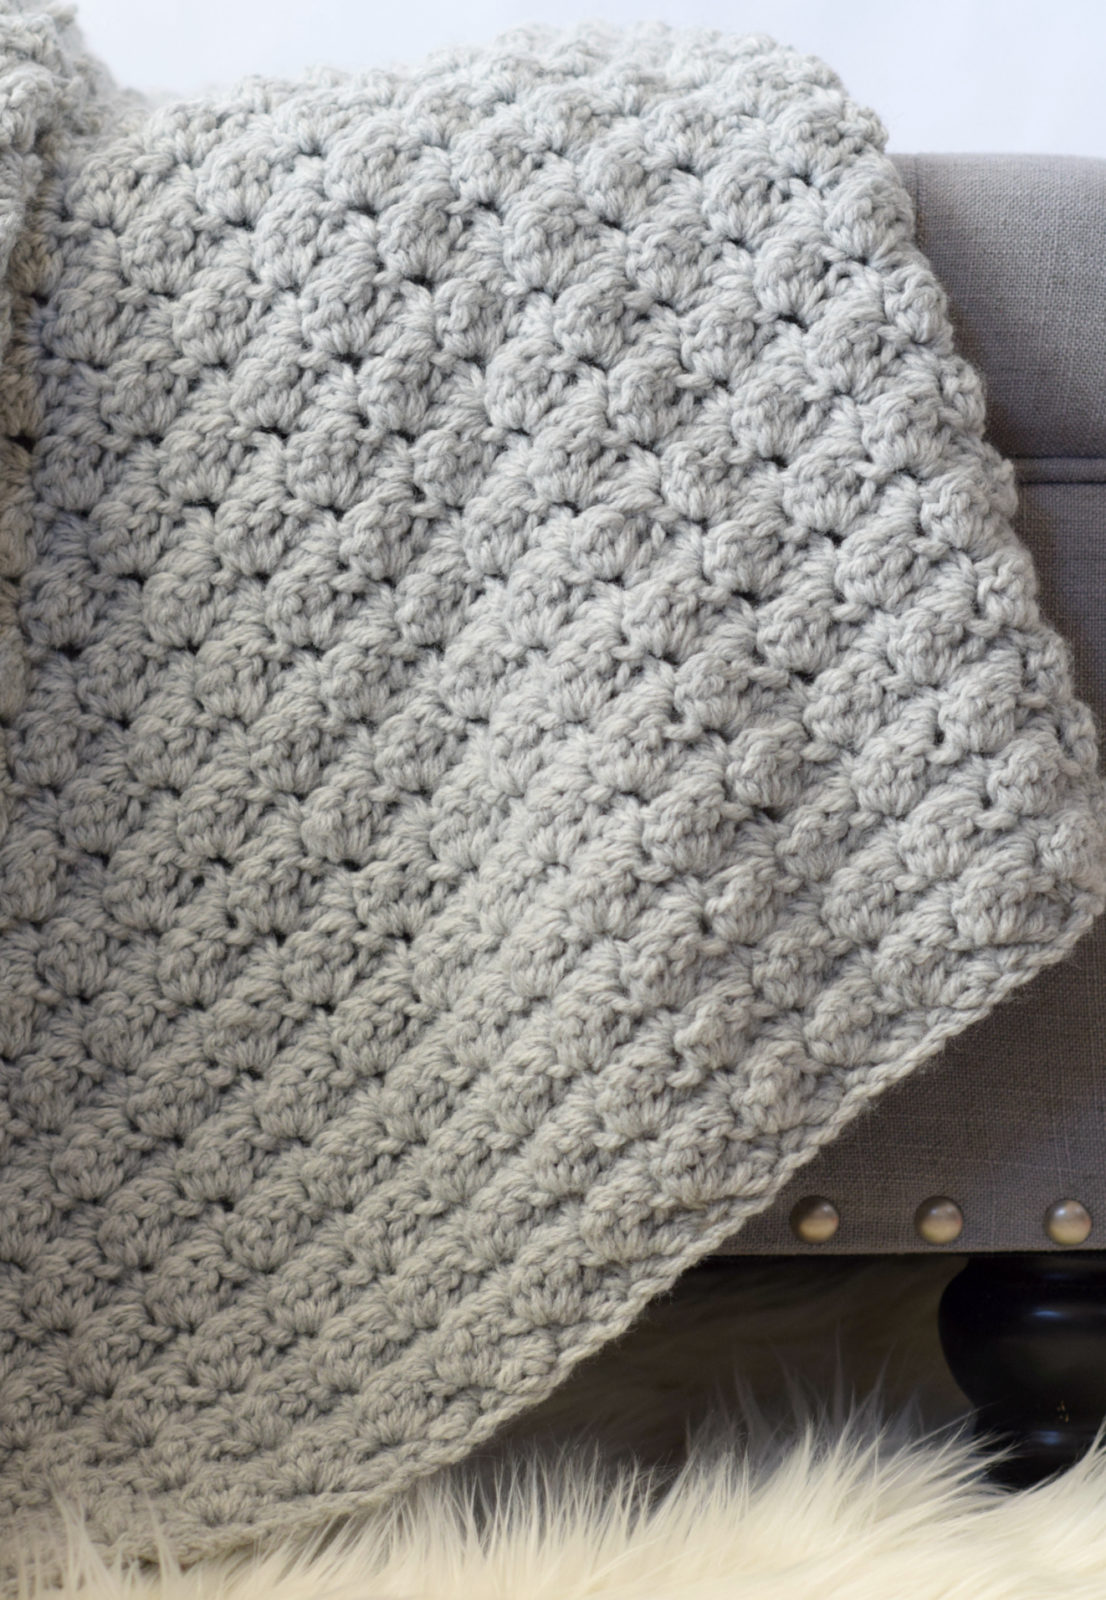 Crochet Blanket Patterns of course, wool often isnu0027t typically the first choice for making a baby xmtkxav